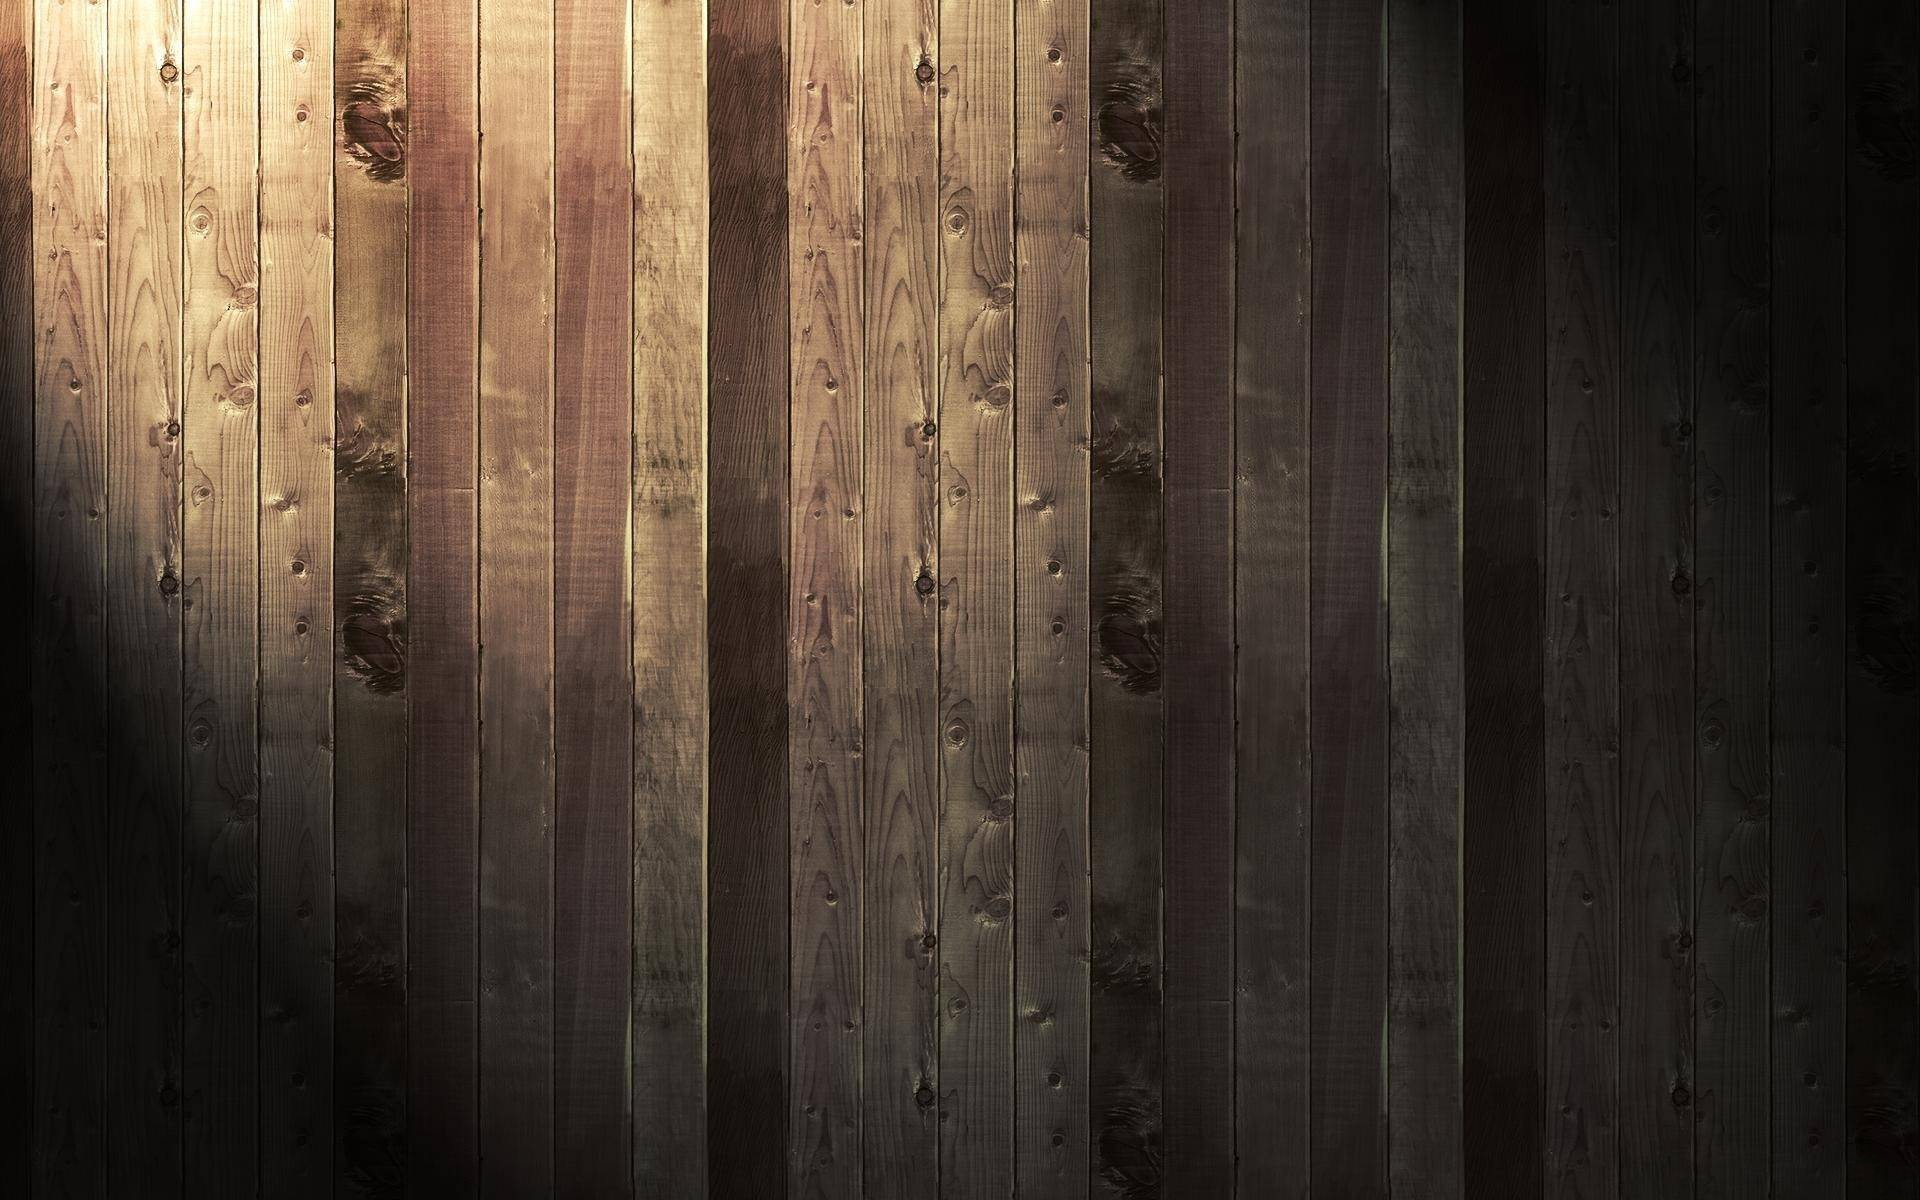 wallpaper wood 2 - photo #40